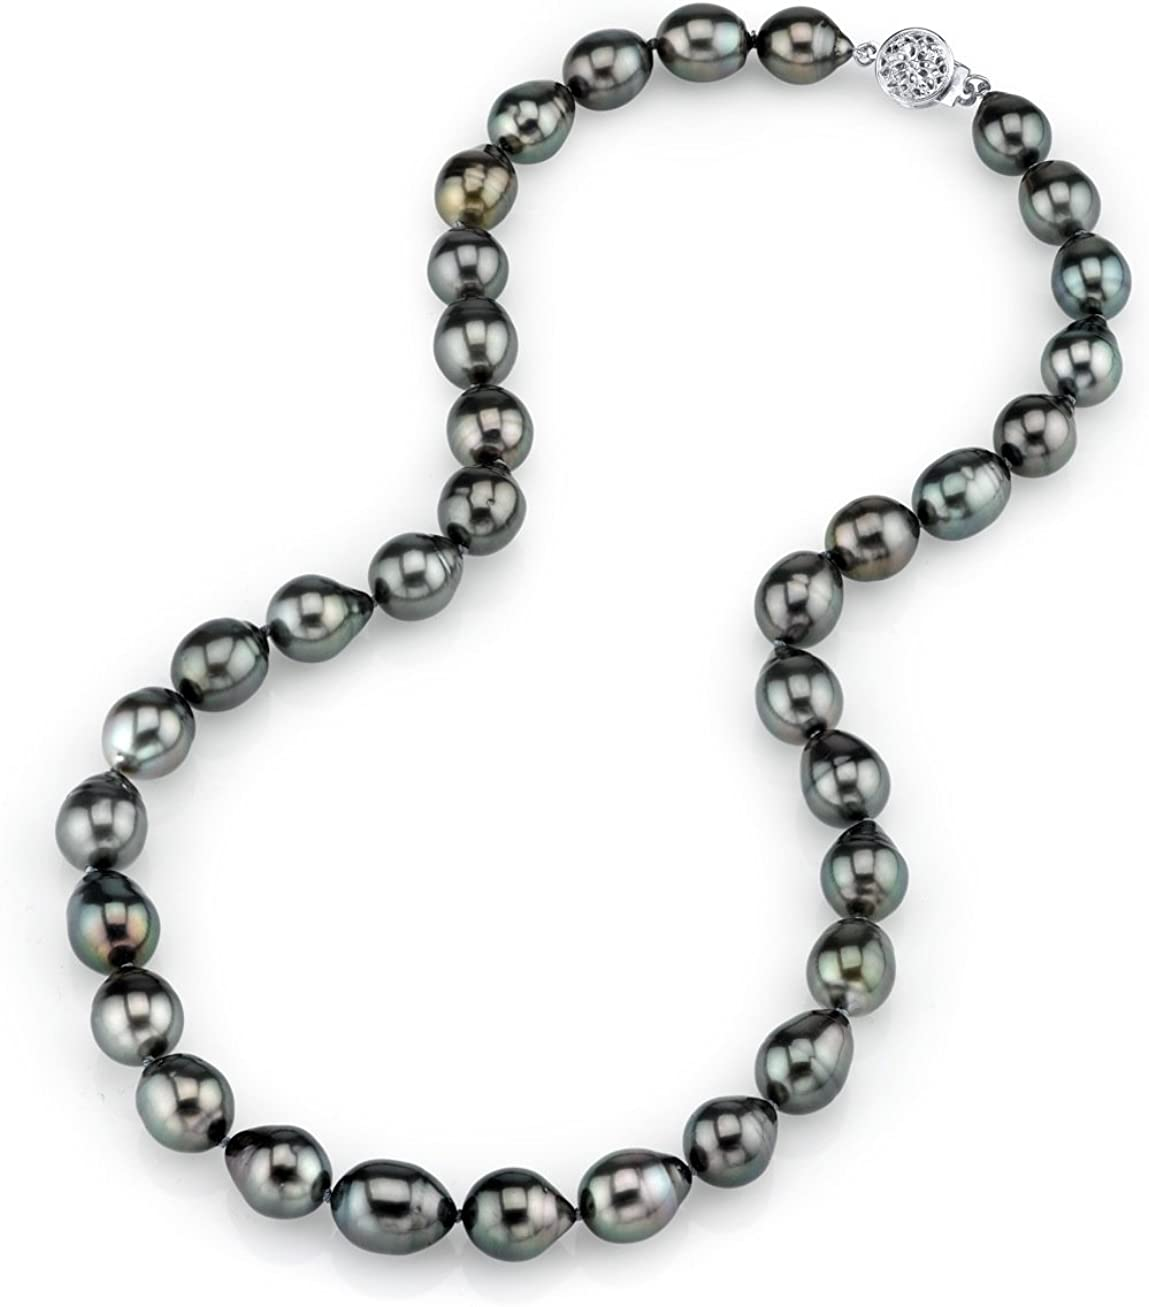 THE PEARL SOURCE 14K Gold 9-10mm Baroque Genuine Black Tahitian South Sea Cultured Pearl Necklace in 17